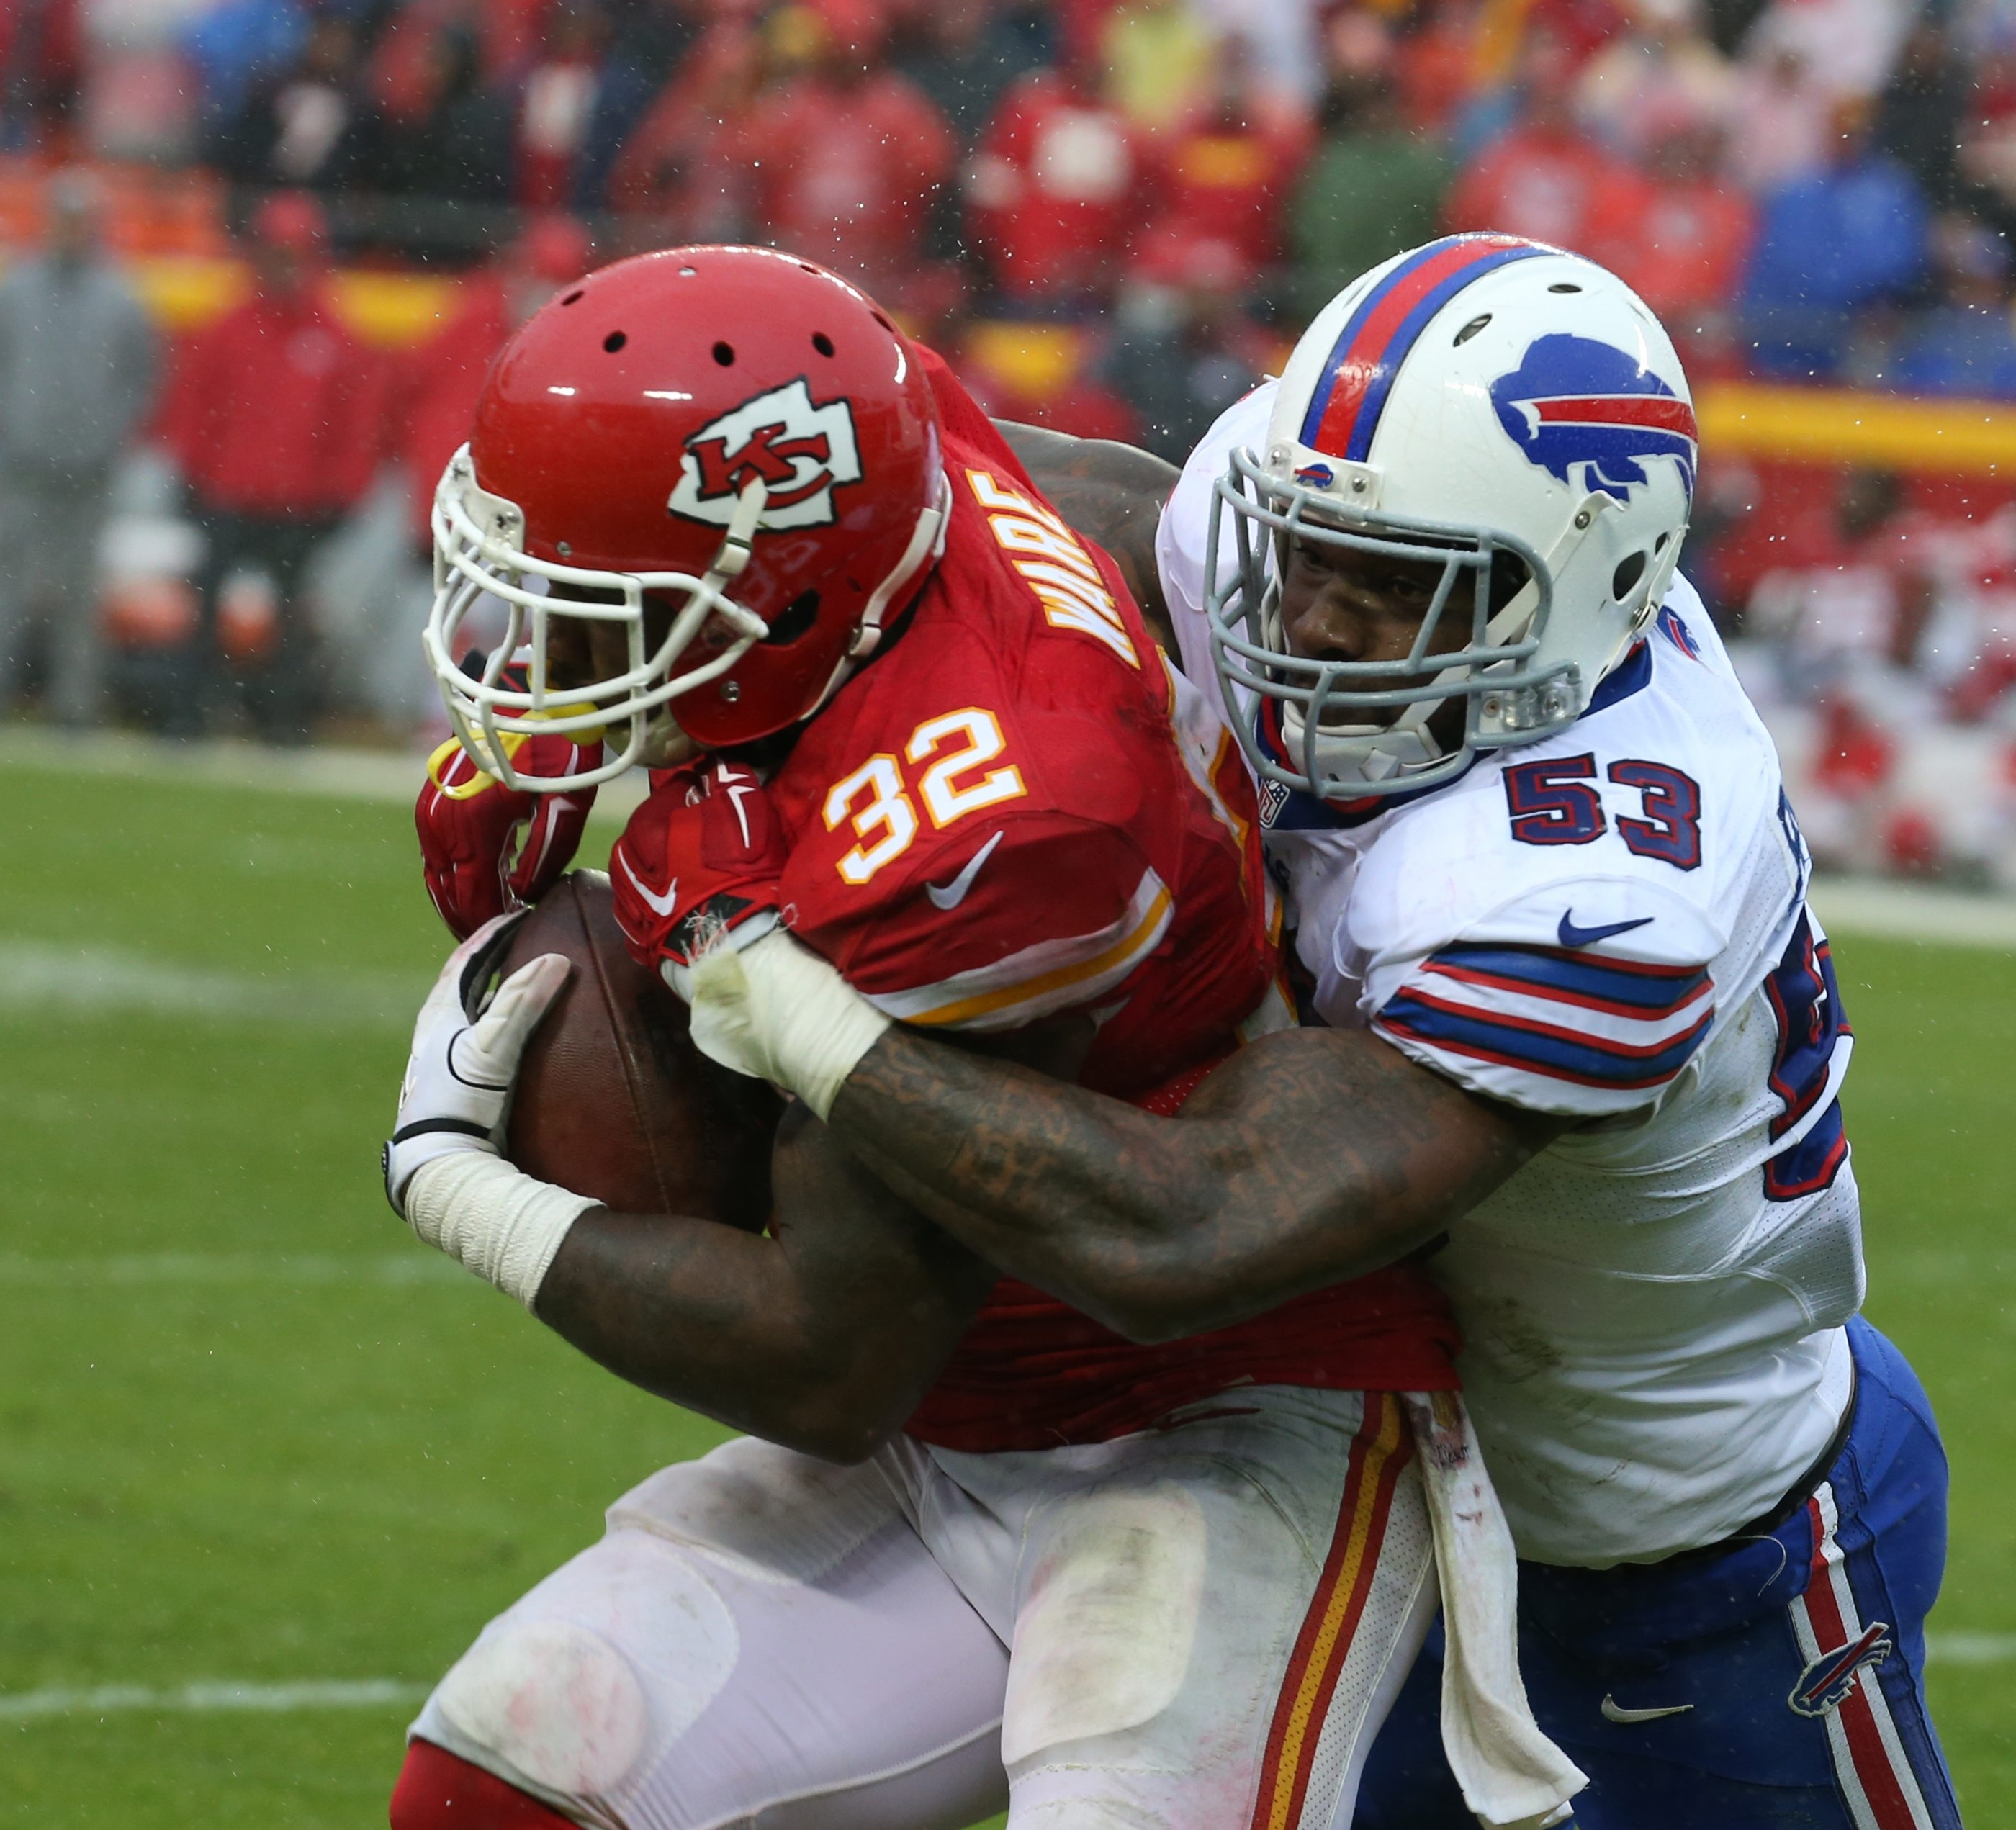 James P. McCoy/ Buffalo News   Bills outside linebacker Nigel Bradham (53) is a free agent who saw his production take a precipitous drop from 2014.